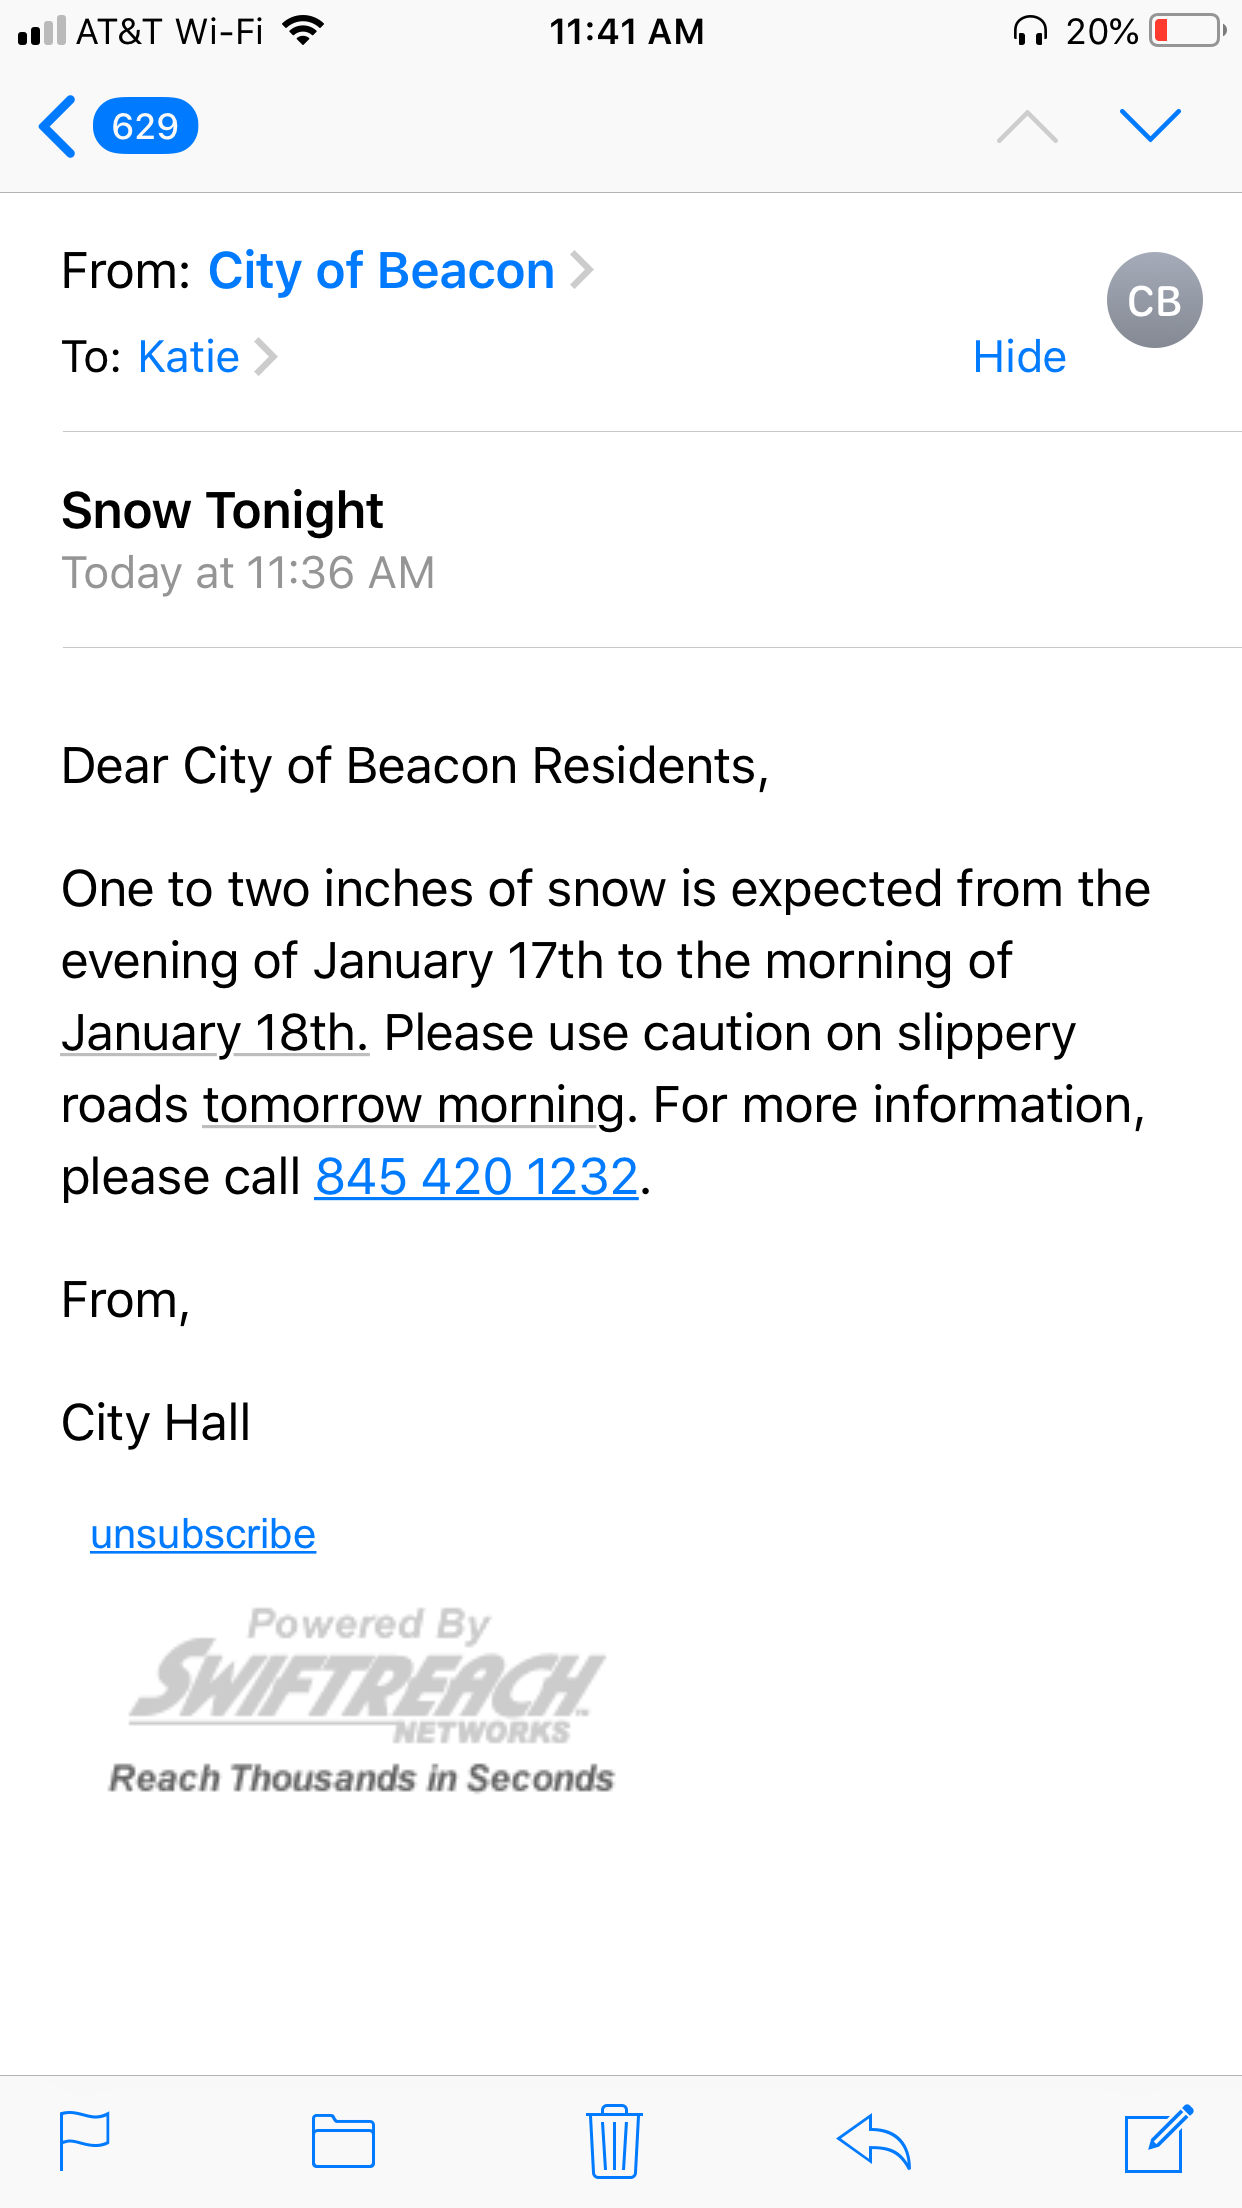 city of beacon email alert.JPG